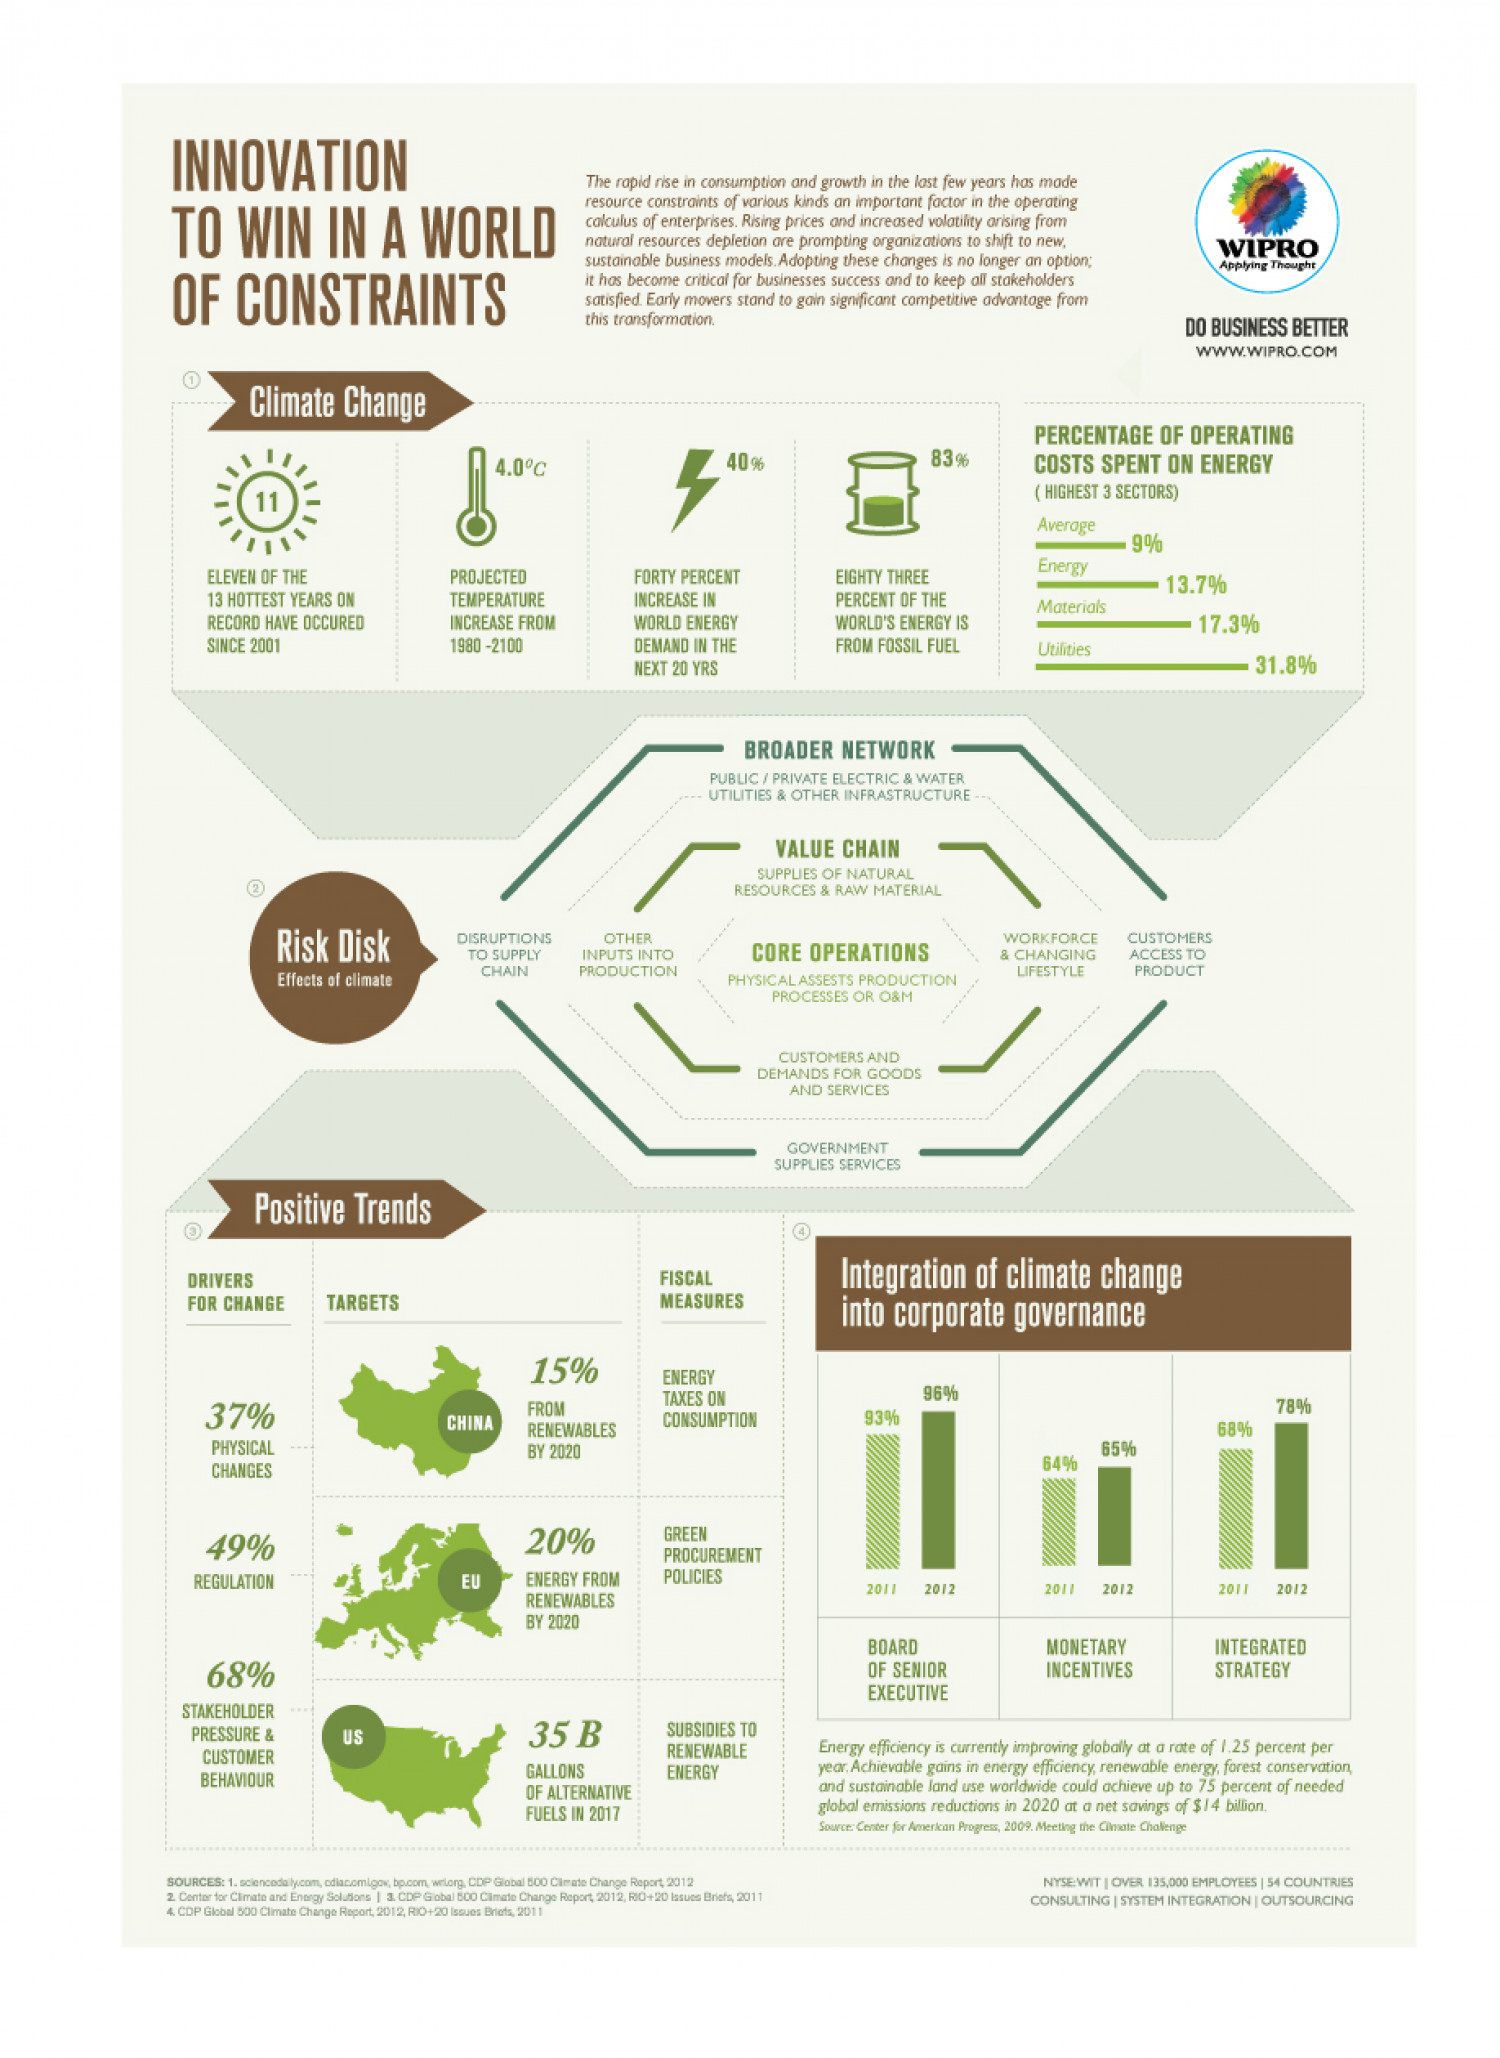 Innovation to win in a world of constraints Infographic